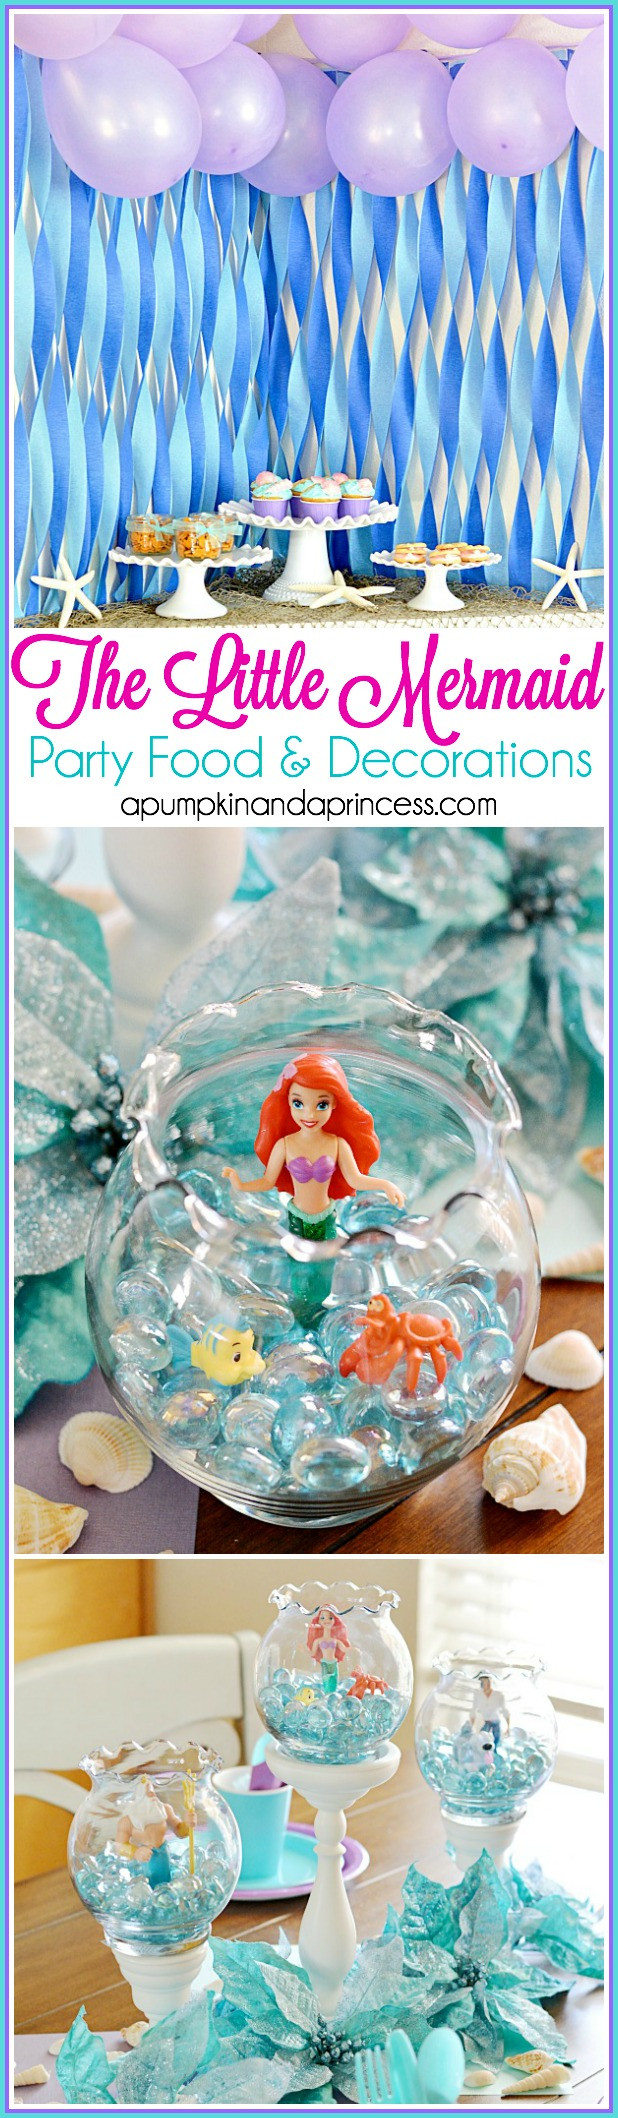 The Little Mermaid Party Ideas Pinterest  The Little Mermaid Party A Pumpkin And A Princess